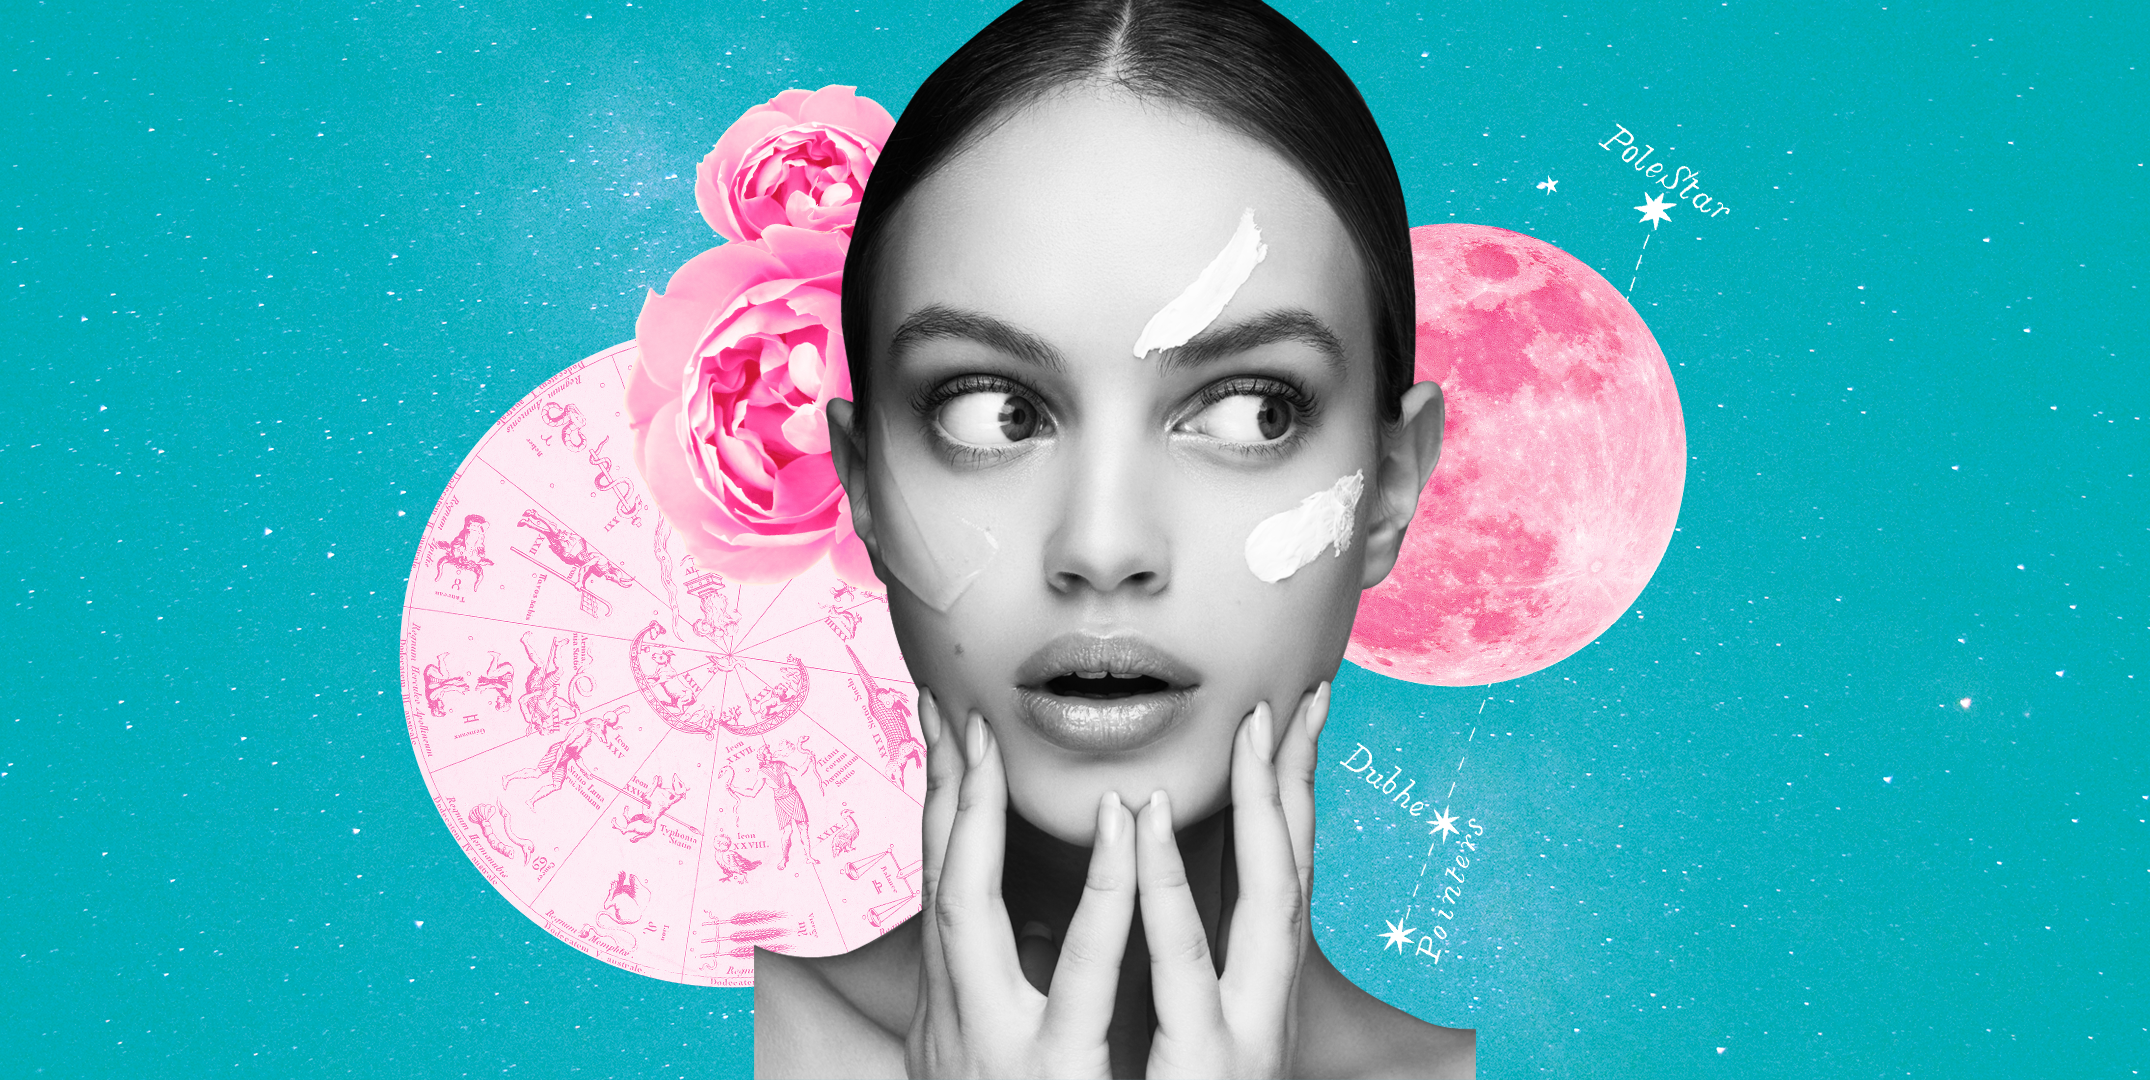 I Let an Astrologer Take Over My Skincare Routine and It Was...Interesting